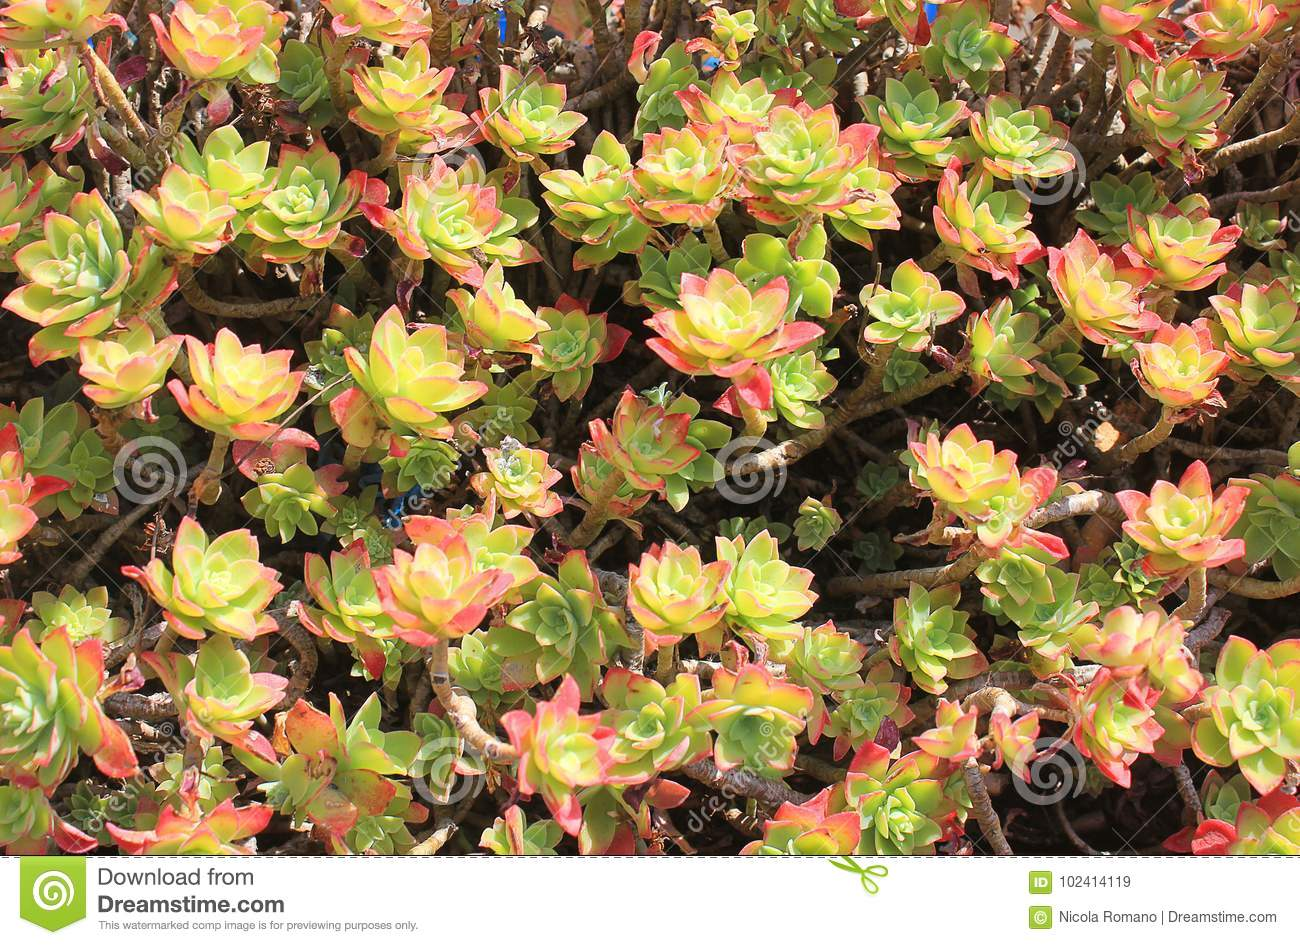 Flowers of a succulent plant stock image image of vegetation download flowers of a succulent plant stock image image of vegetation garden 102414119 mightylinksfo